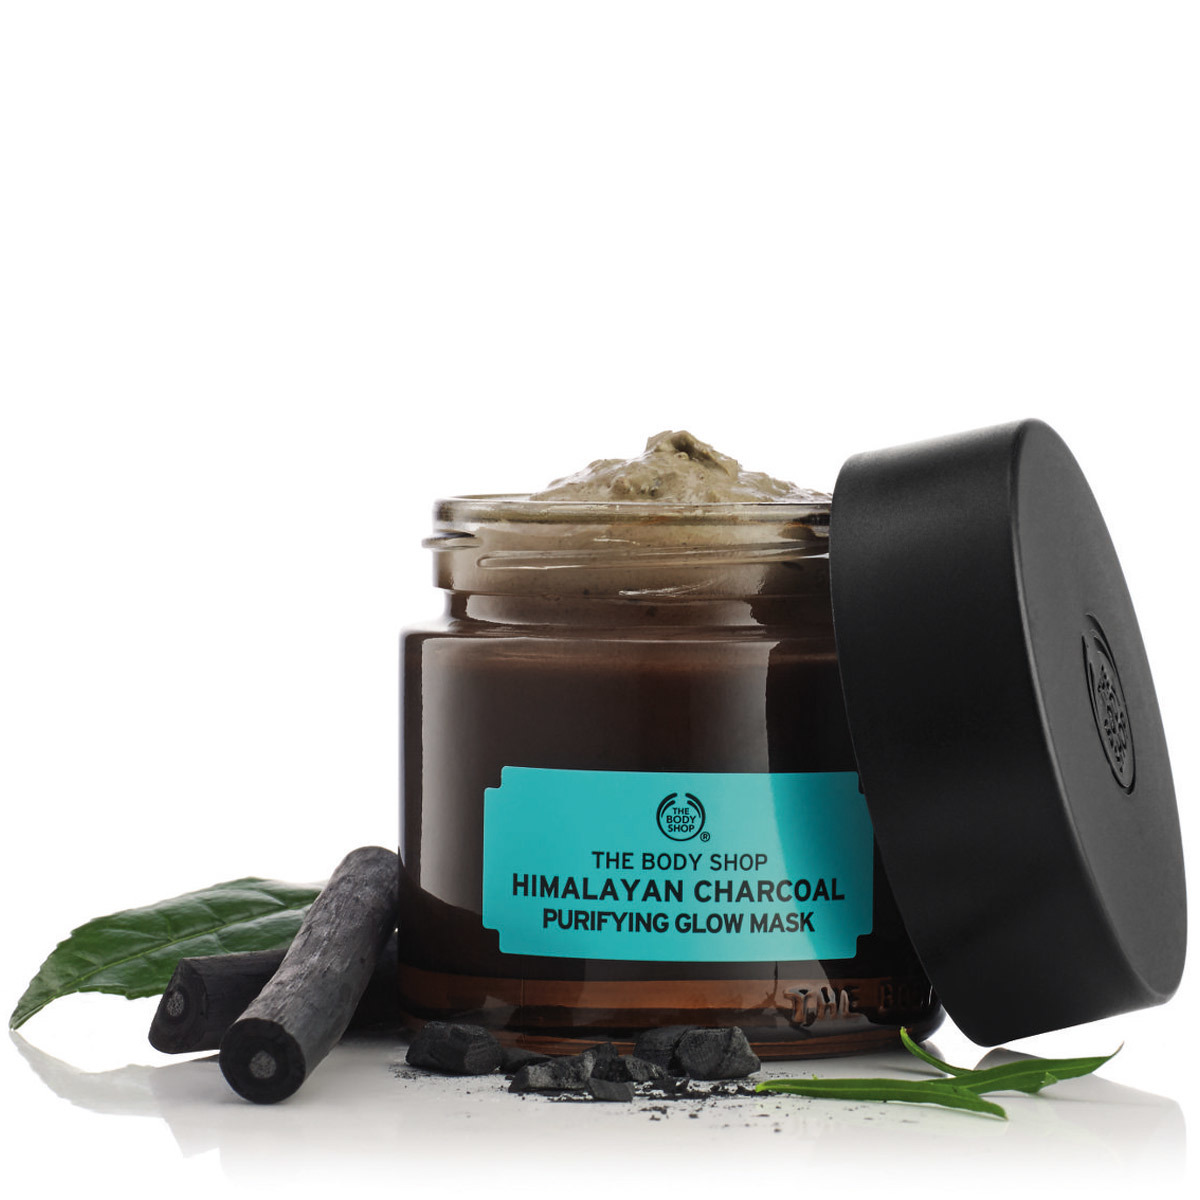 Himalayan Charcoal Purifying Glow Mask de The Body Shop.